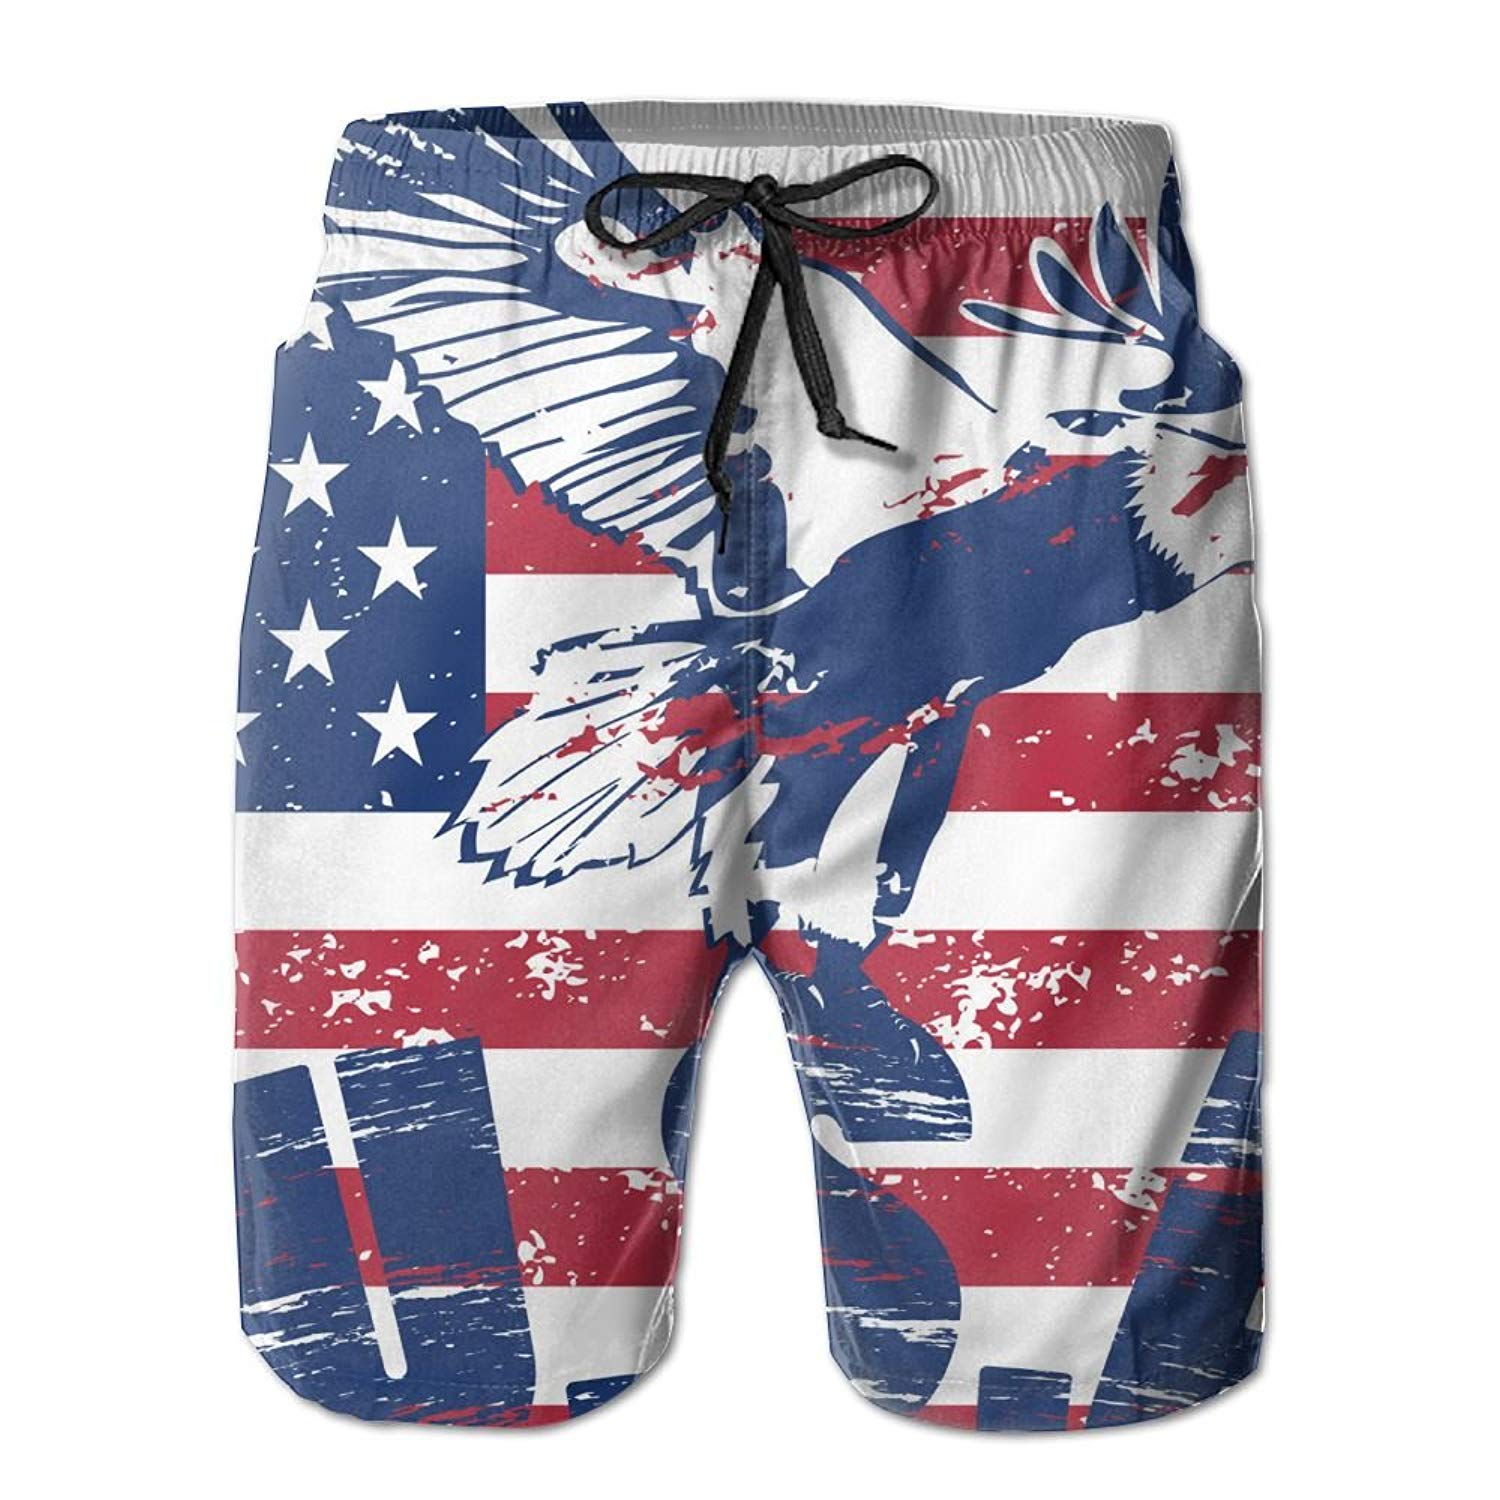 29b94b2fbf Get Quotations · Beach Volleyball Shorts, Vintage American Flag Eagle Beach  Coverup Shorts for Men Boys, Outdoor